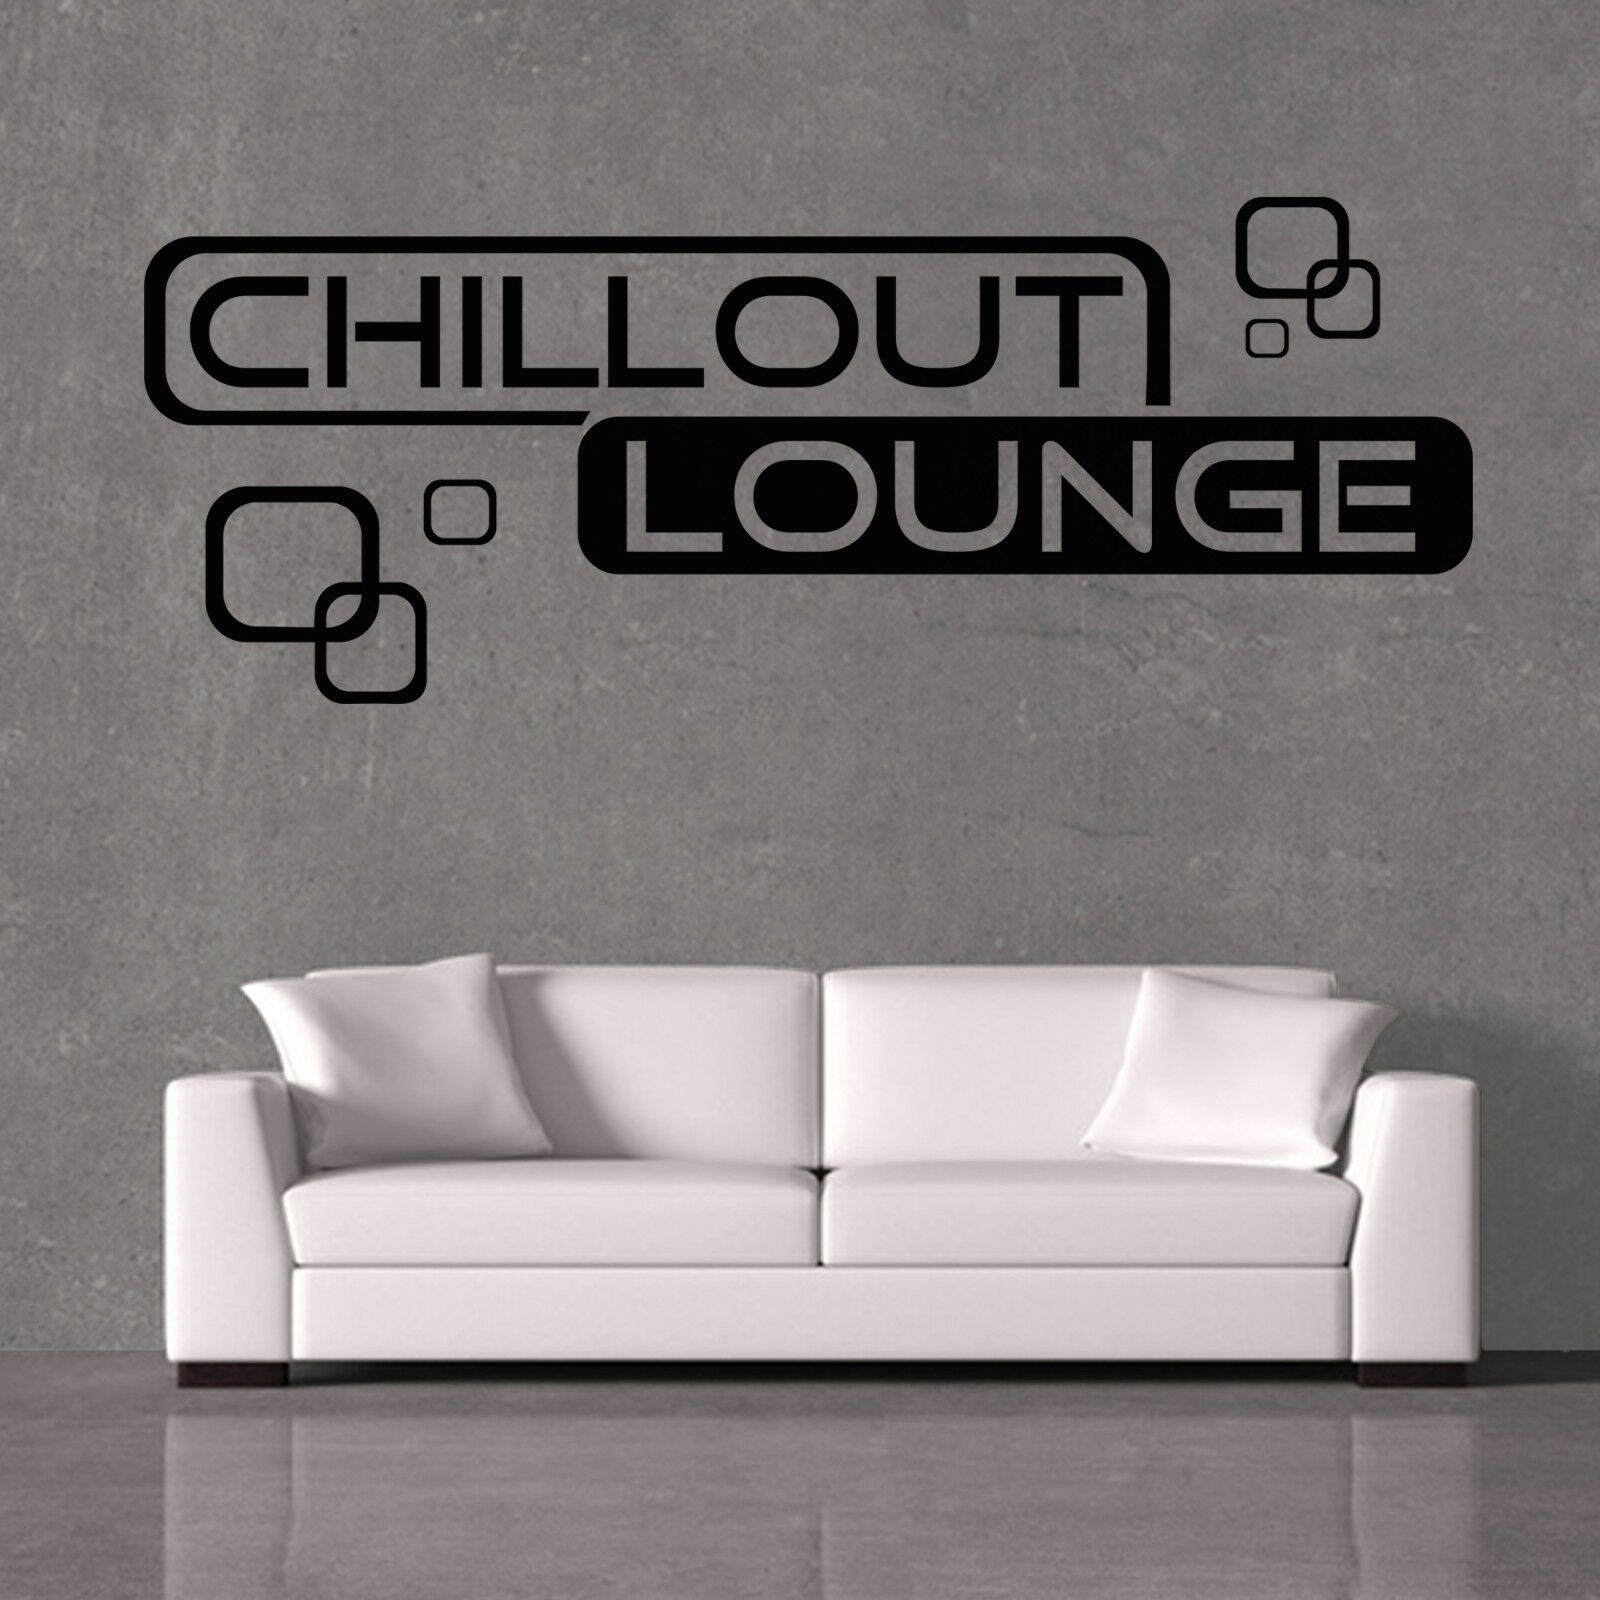 wandtattoo chillout lounge wohnzimmer relaxzone retro cubes quadrate s xxl eur 9 99 picclick de. Black Bedroom Furniture Sets. Home Design Ideas